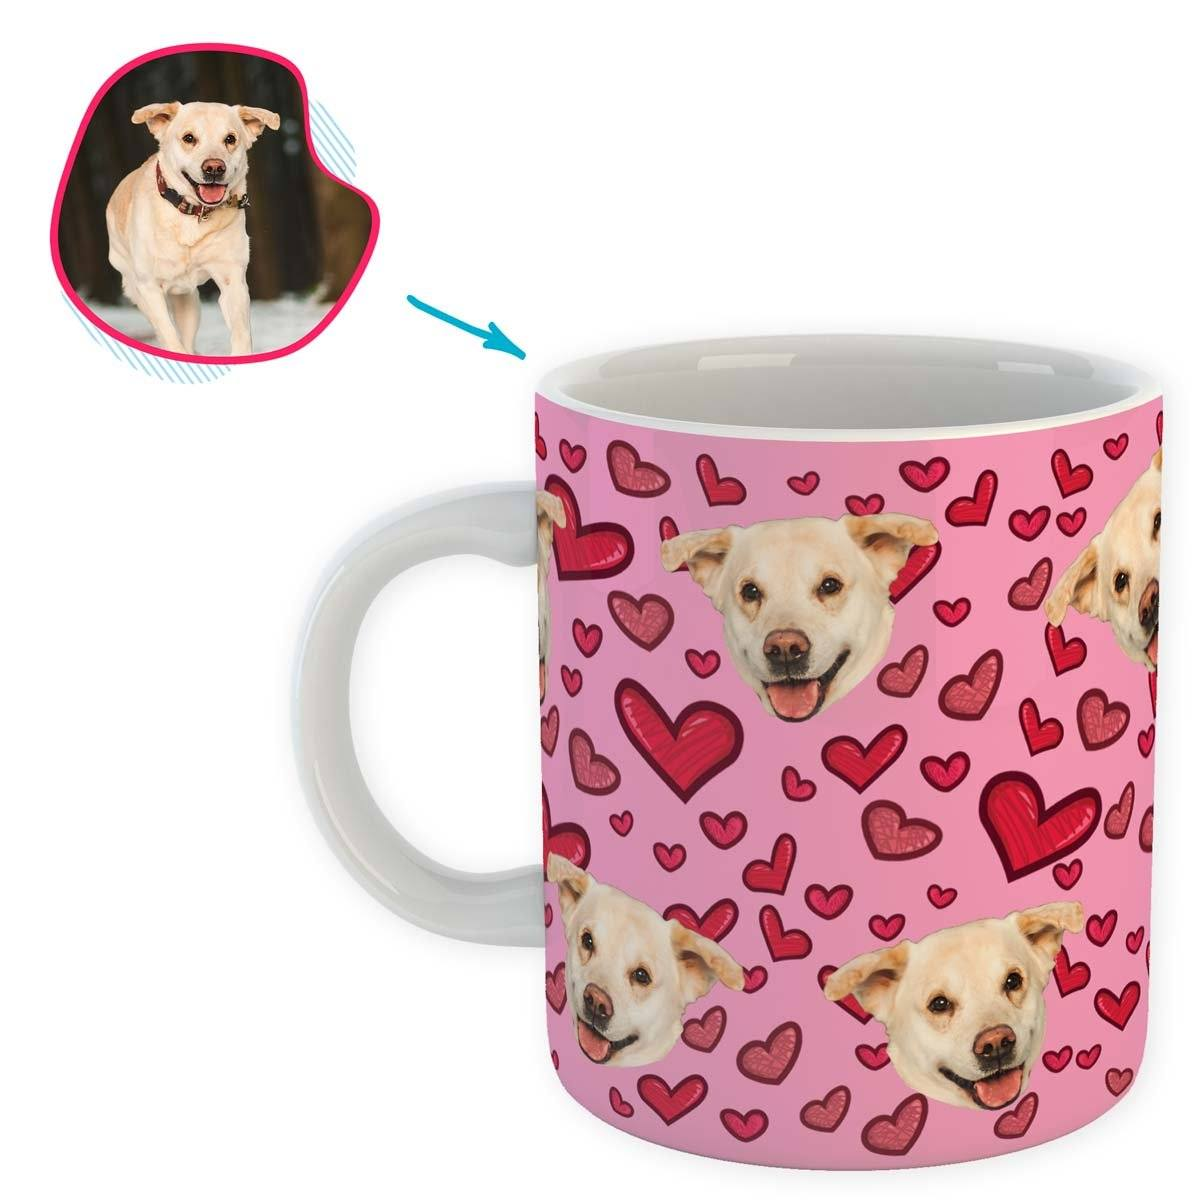 pink Heart mug personalized with photo of face printed on it